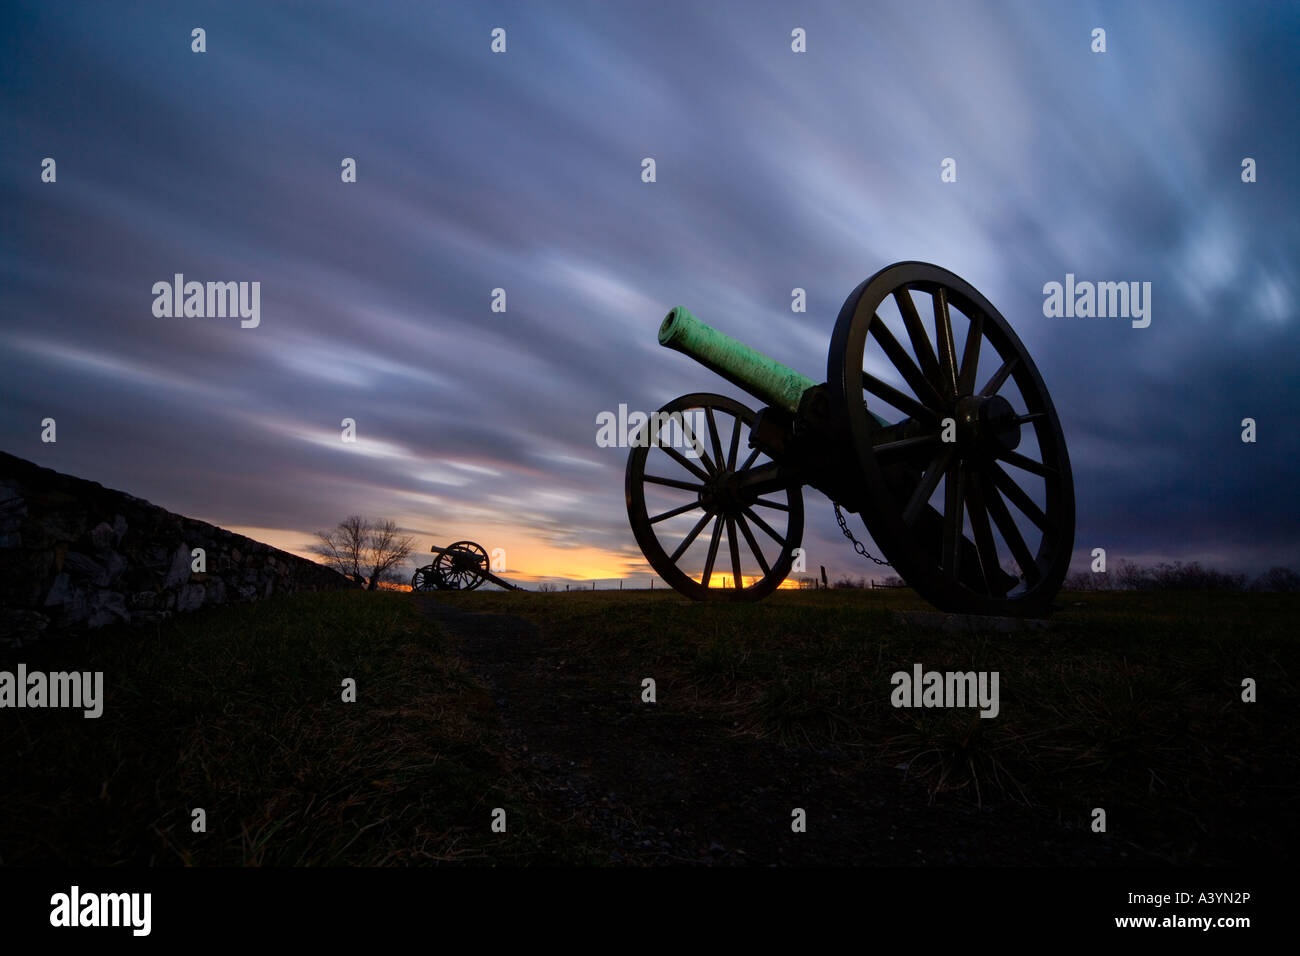 Antietam Battlefield. American Civil War cannons cannon guns at the Final Attack ridge stone wall. Dramatic sky - Stock Image